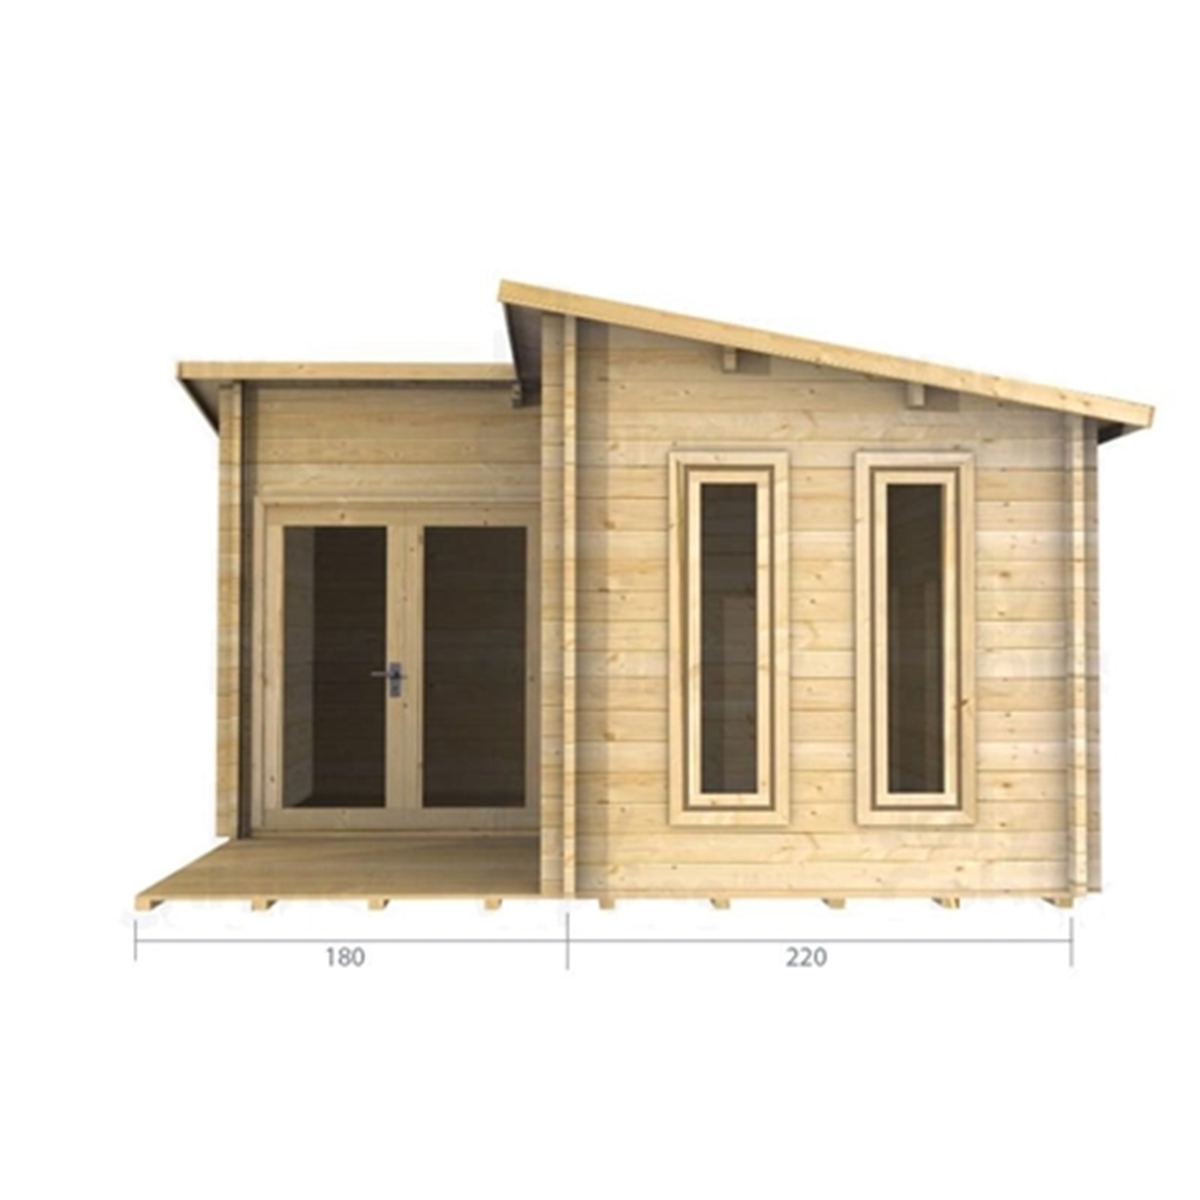 Marvelous photograph of Uppingham Log Cabins : 4m x 4m (13 x 13) Pent Style Log Cabin (2054  with #9A7231 color and 1200x1200 pixels